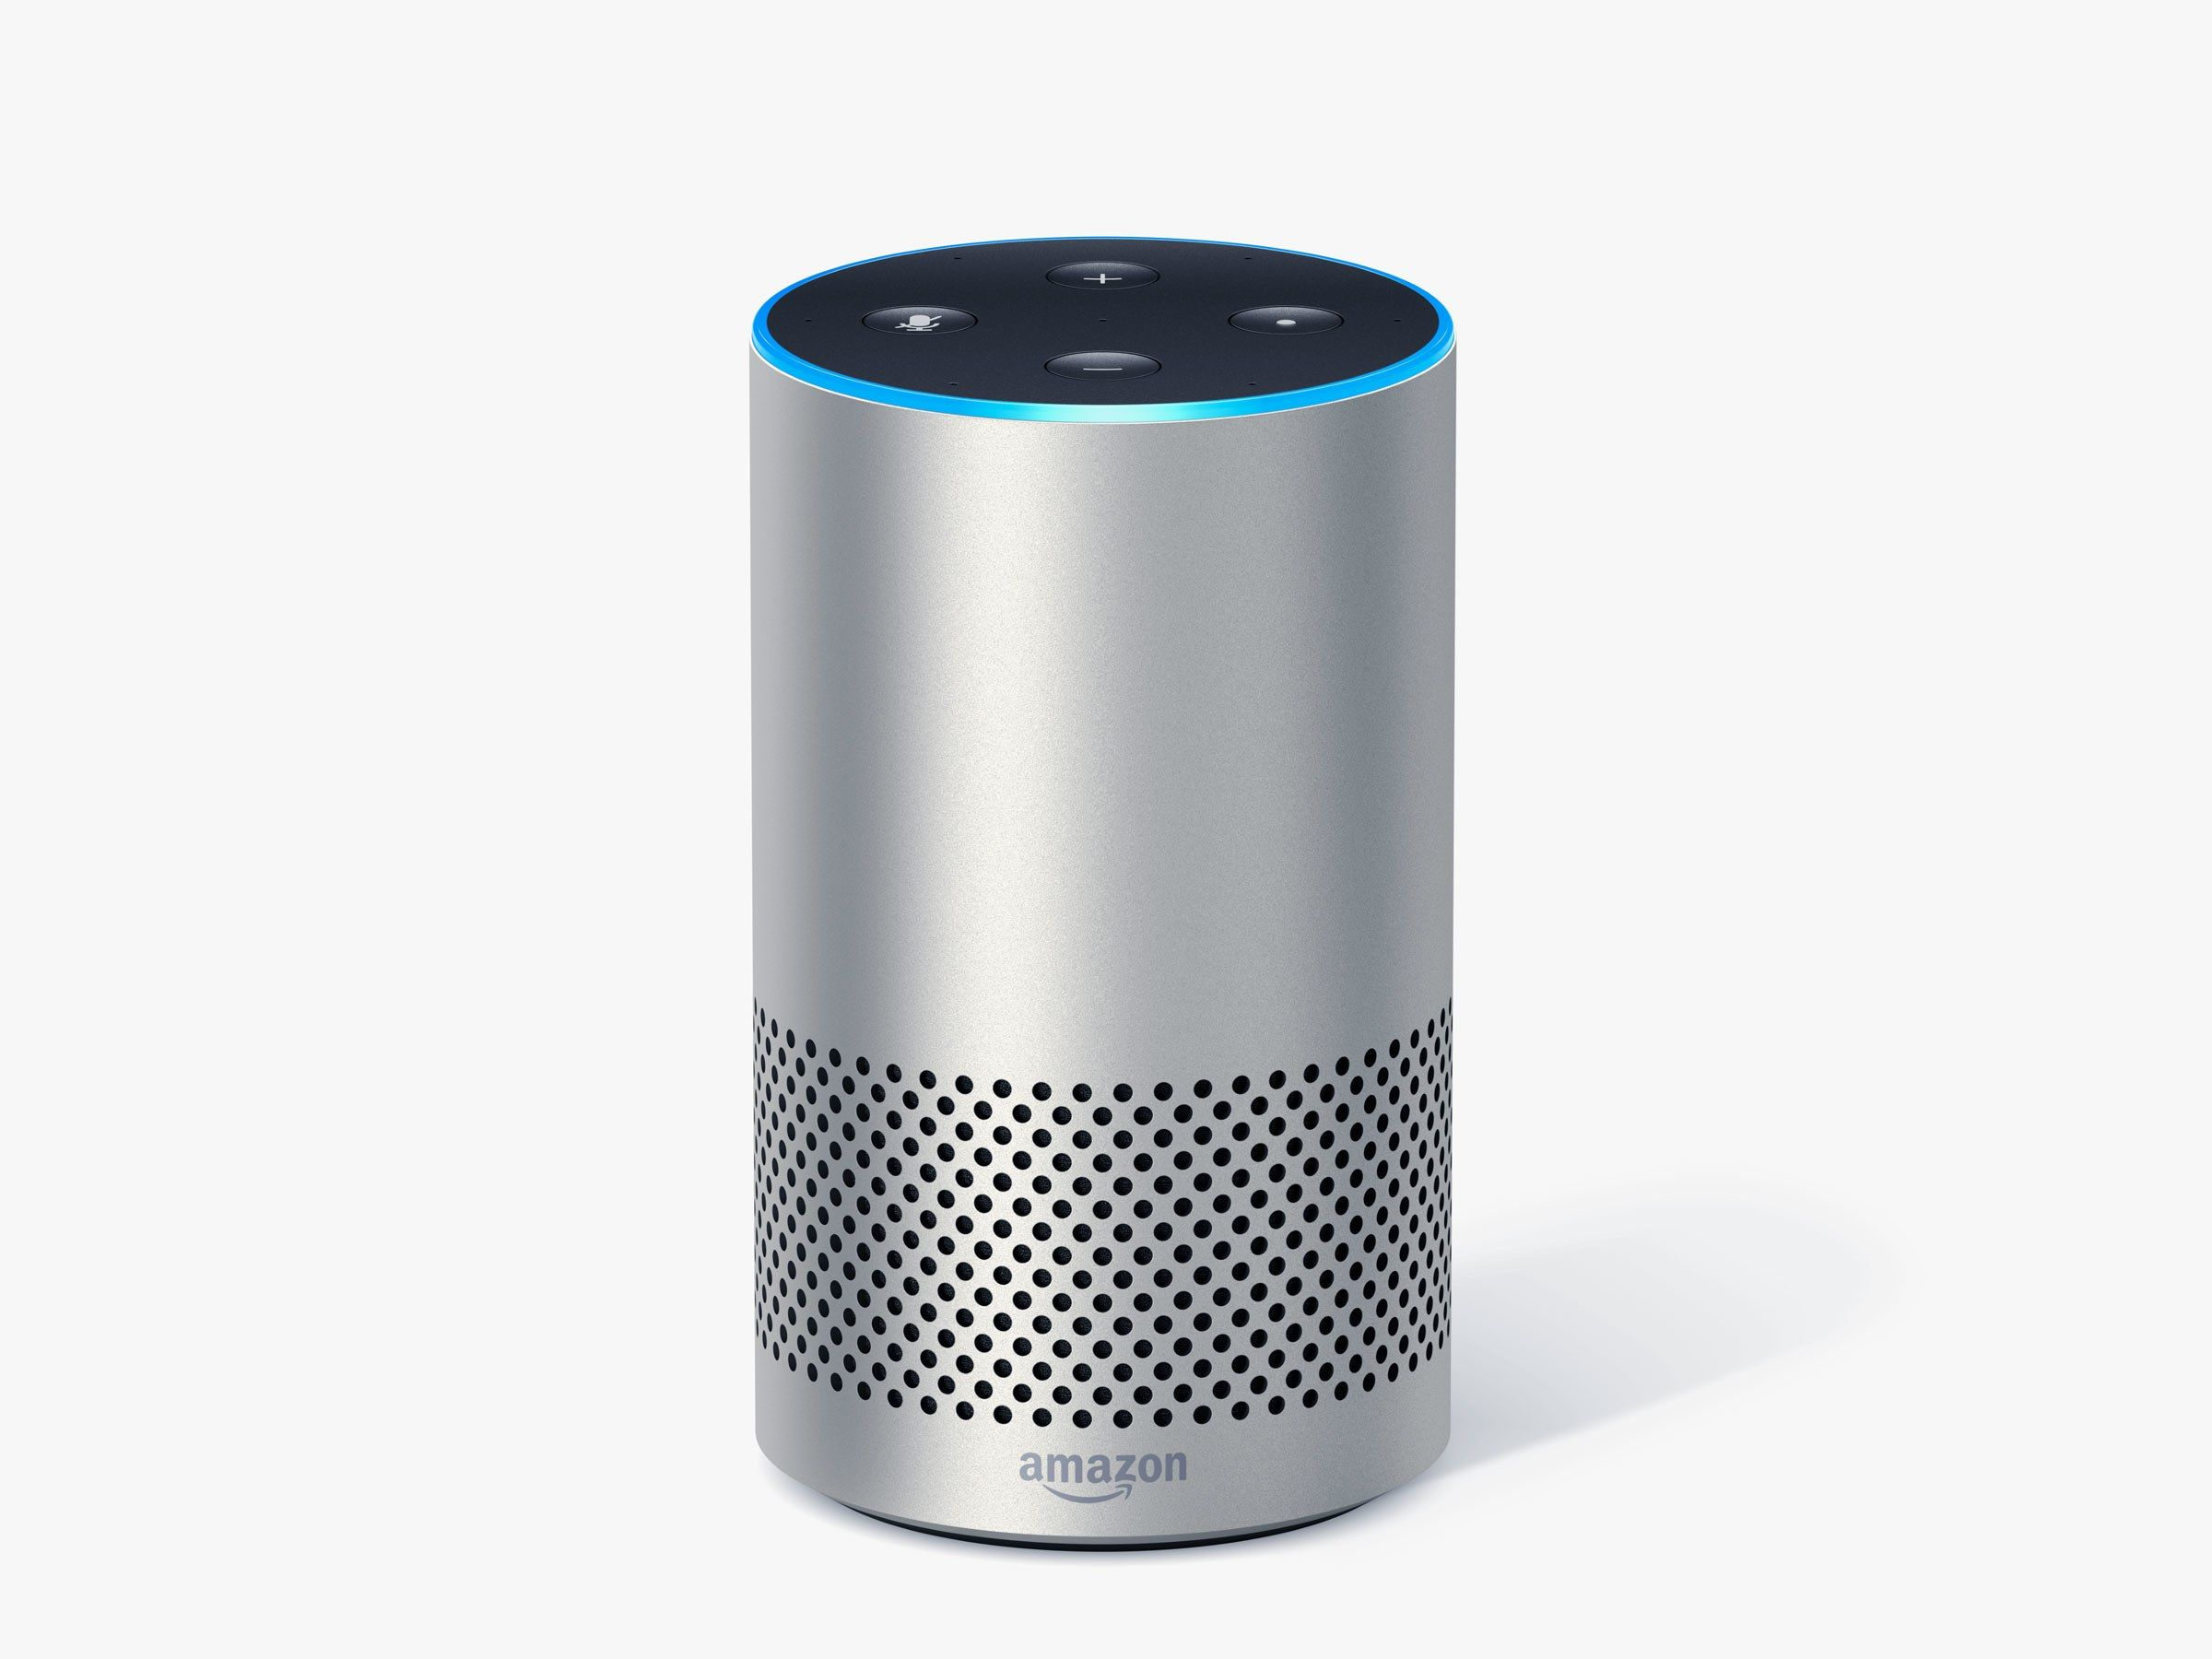 This is the Brand-new Picture Of Amazon New Alexa Products